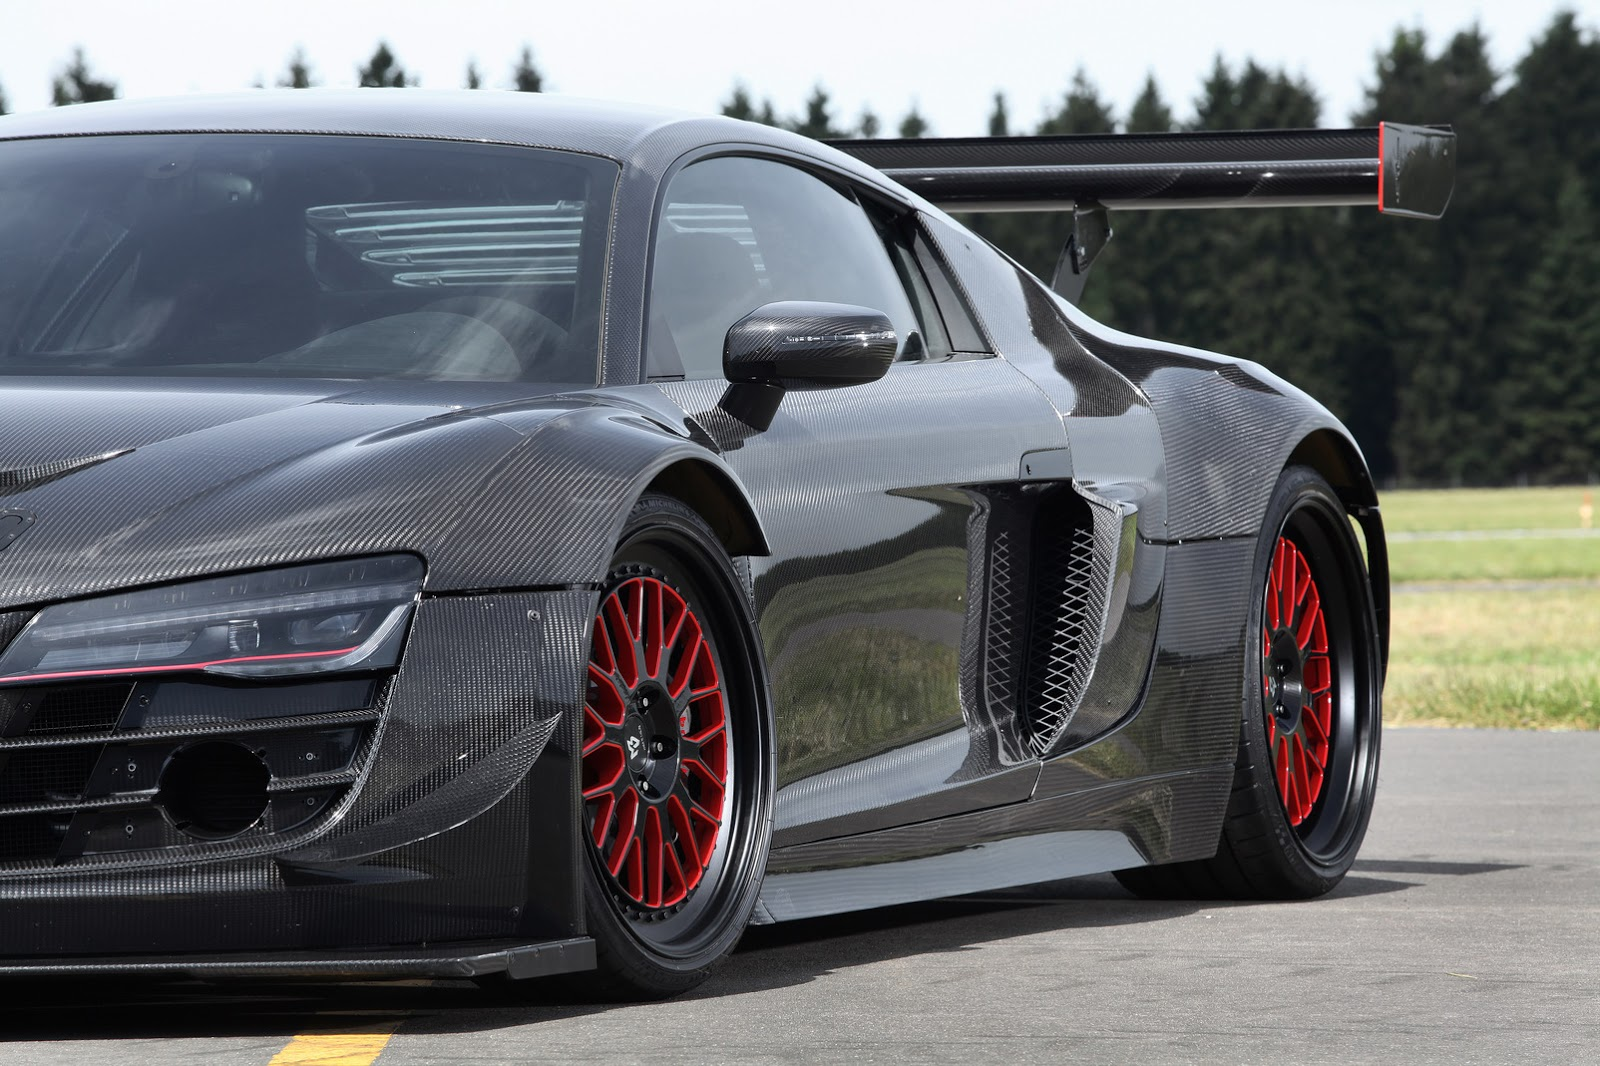 Audi R8 V10 Plus Gets a 950 HP Makeover Complete With Carbon Fiber Body - autoevolution